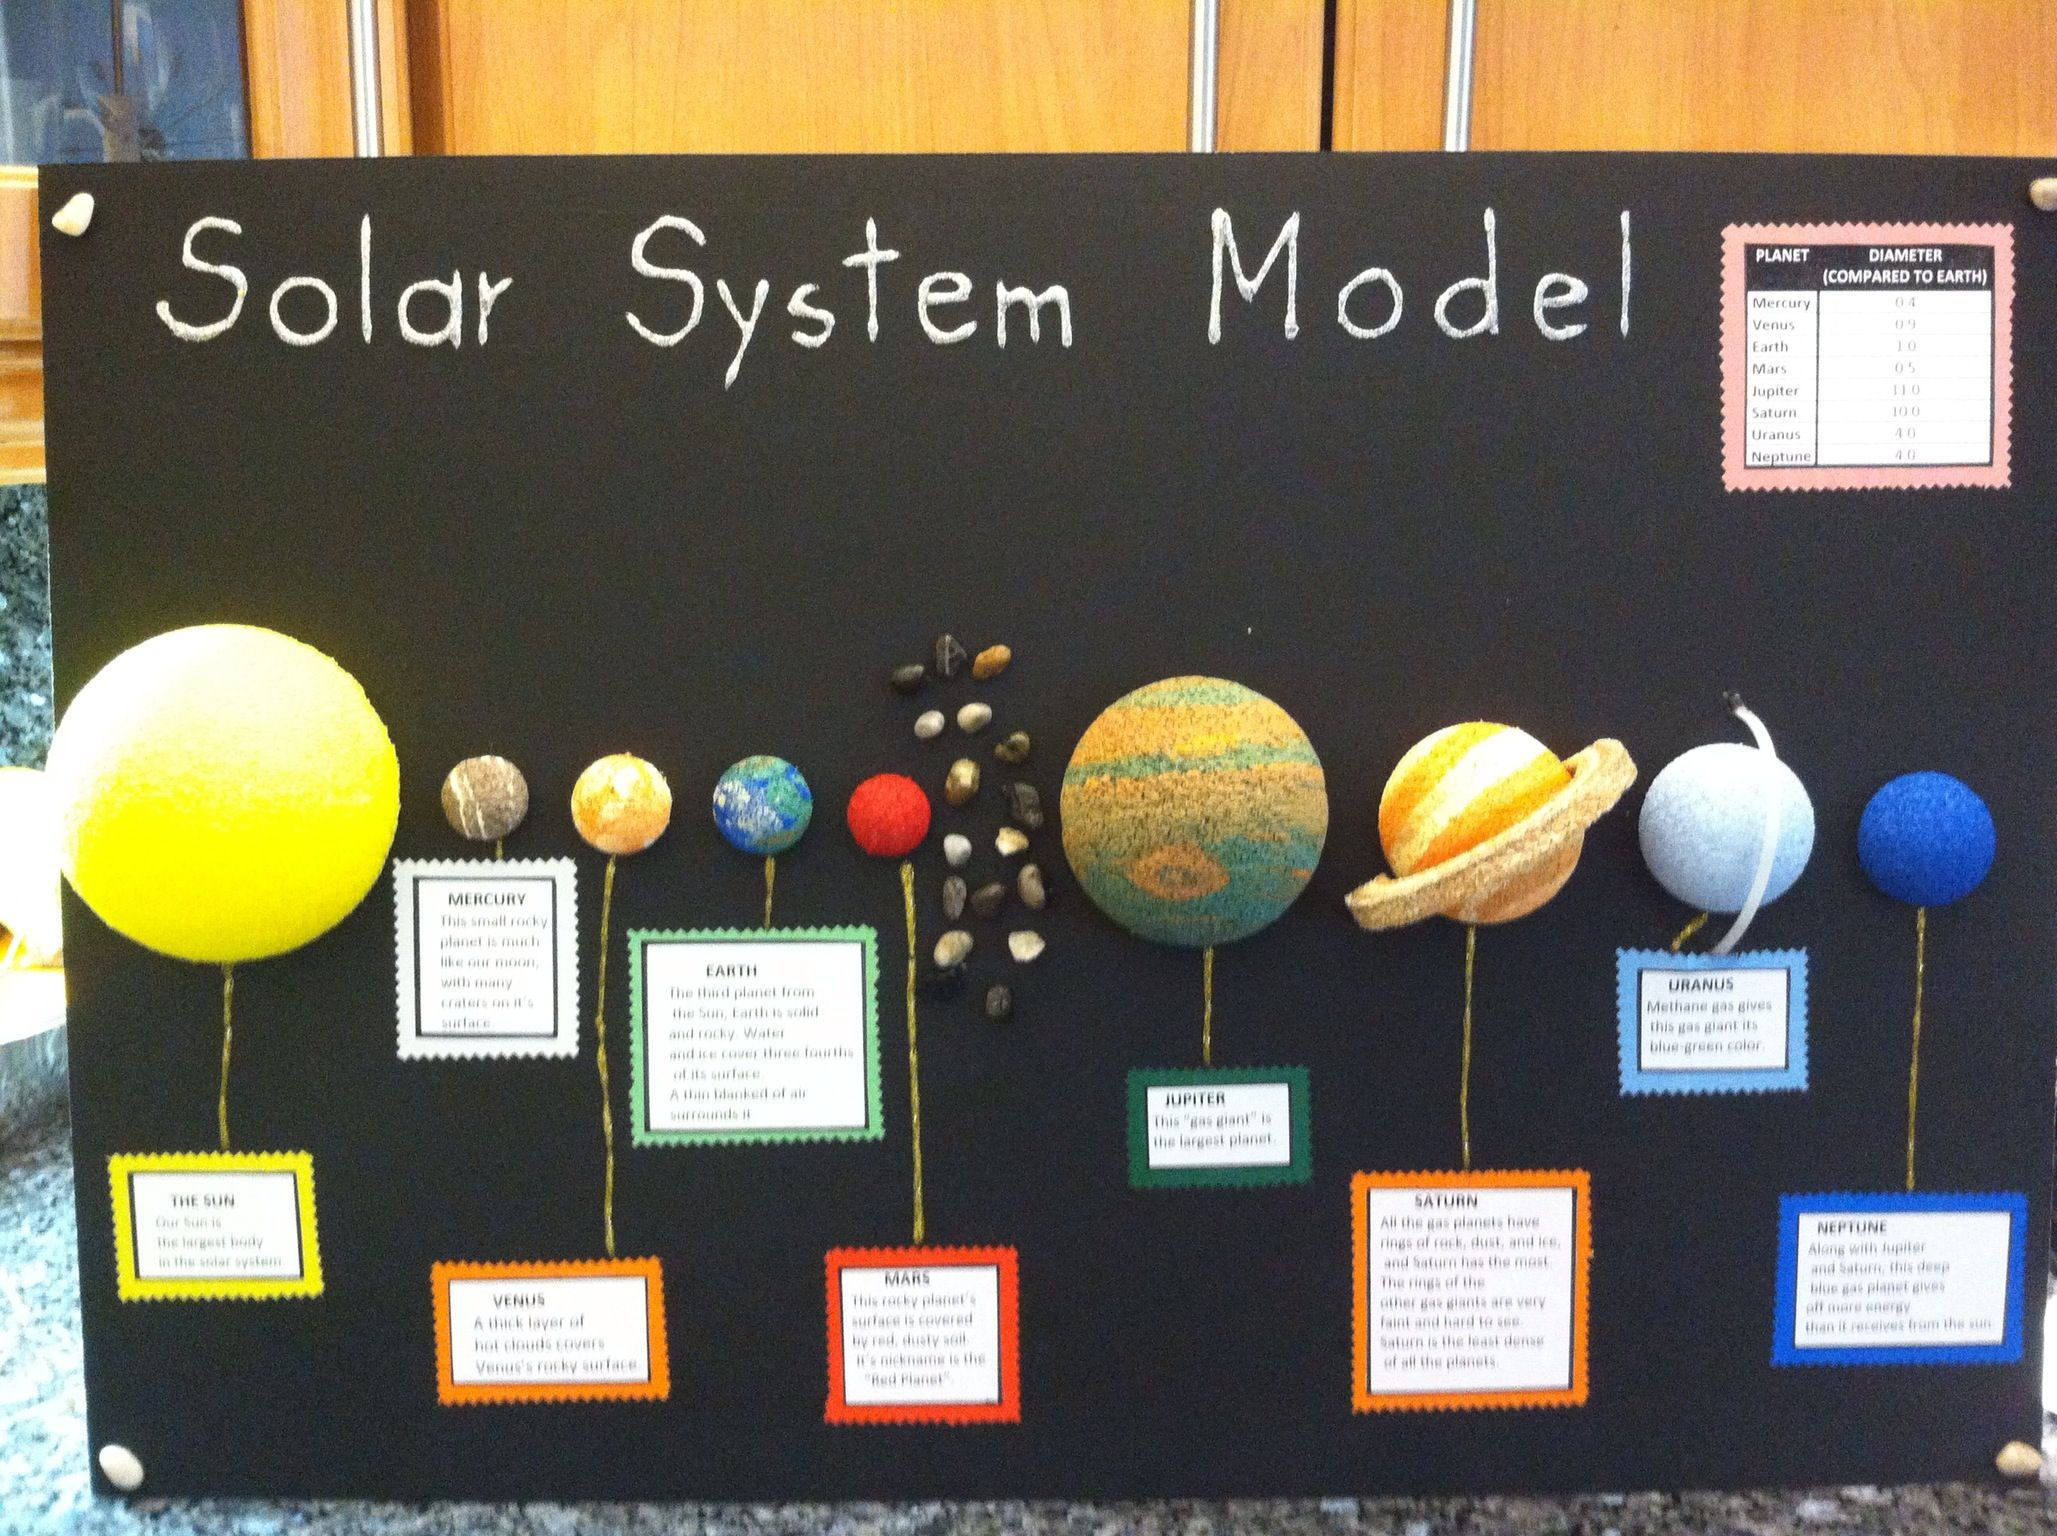 3d solar system model school project - photo #2